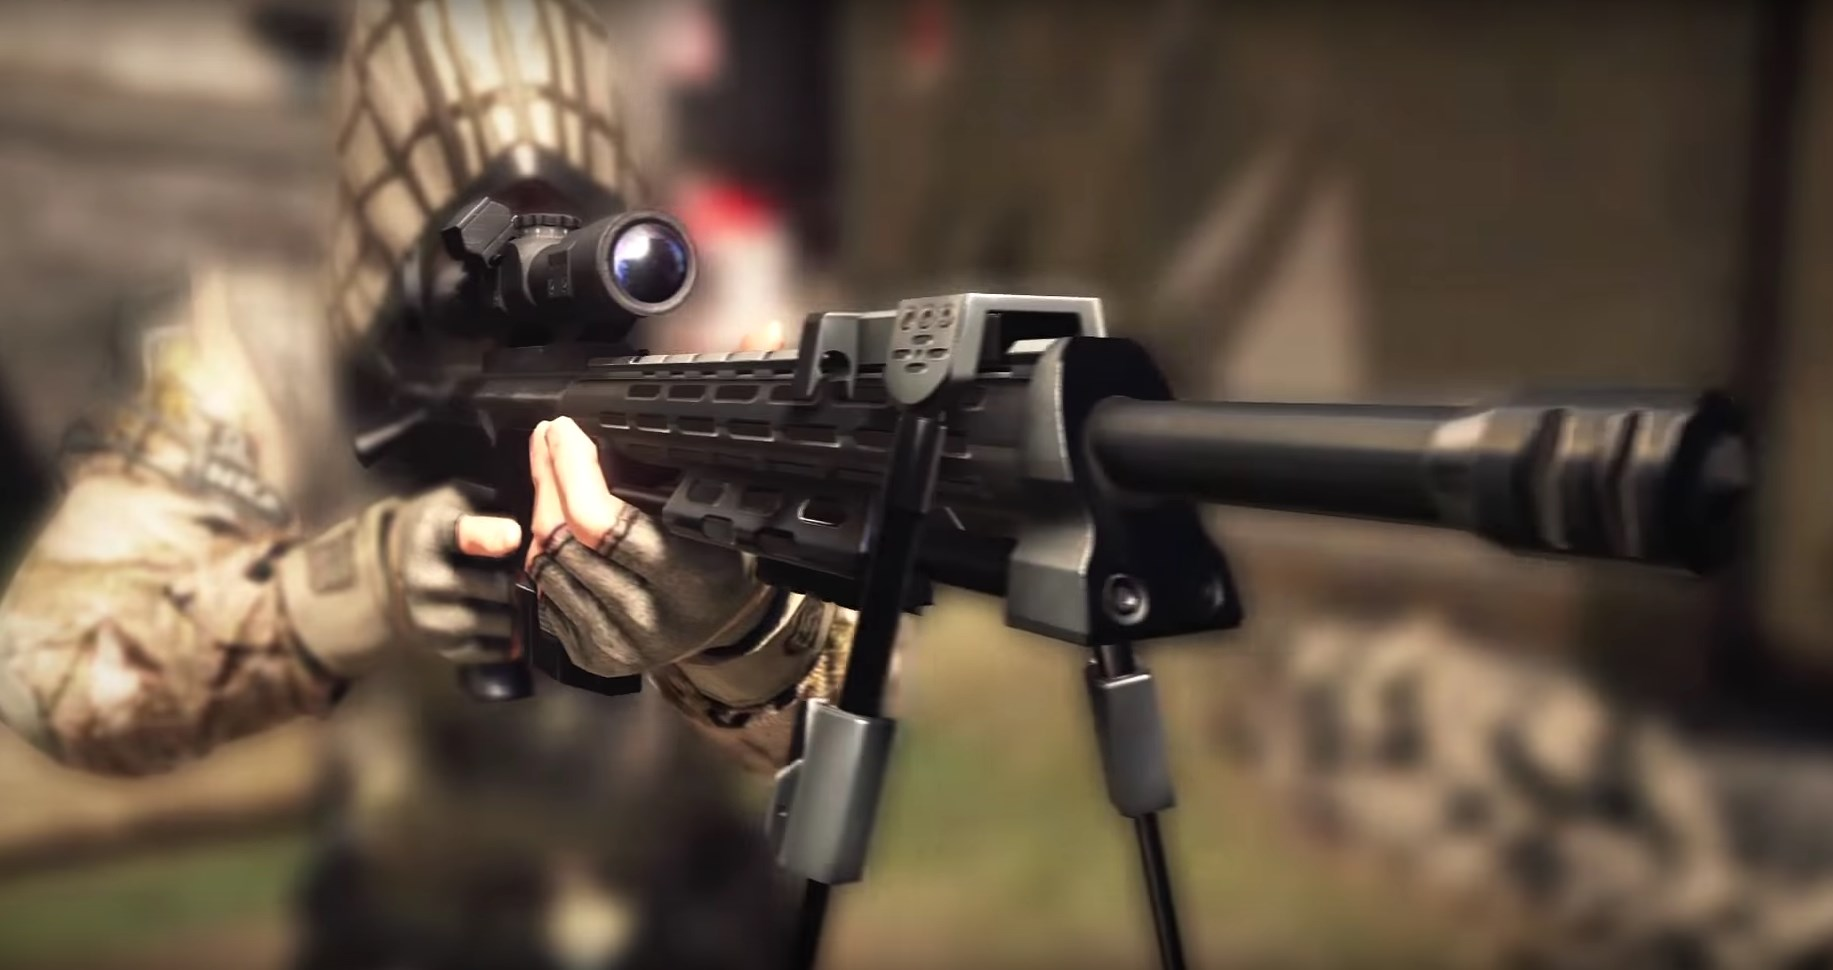 Free-to-play military shooter Ironsight will begin open beta